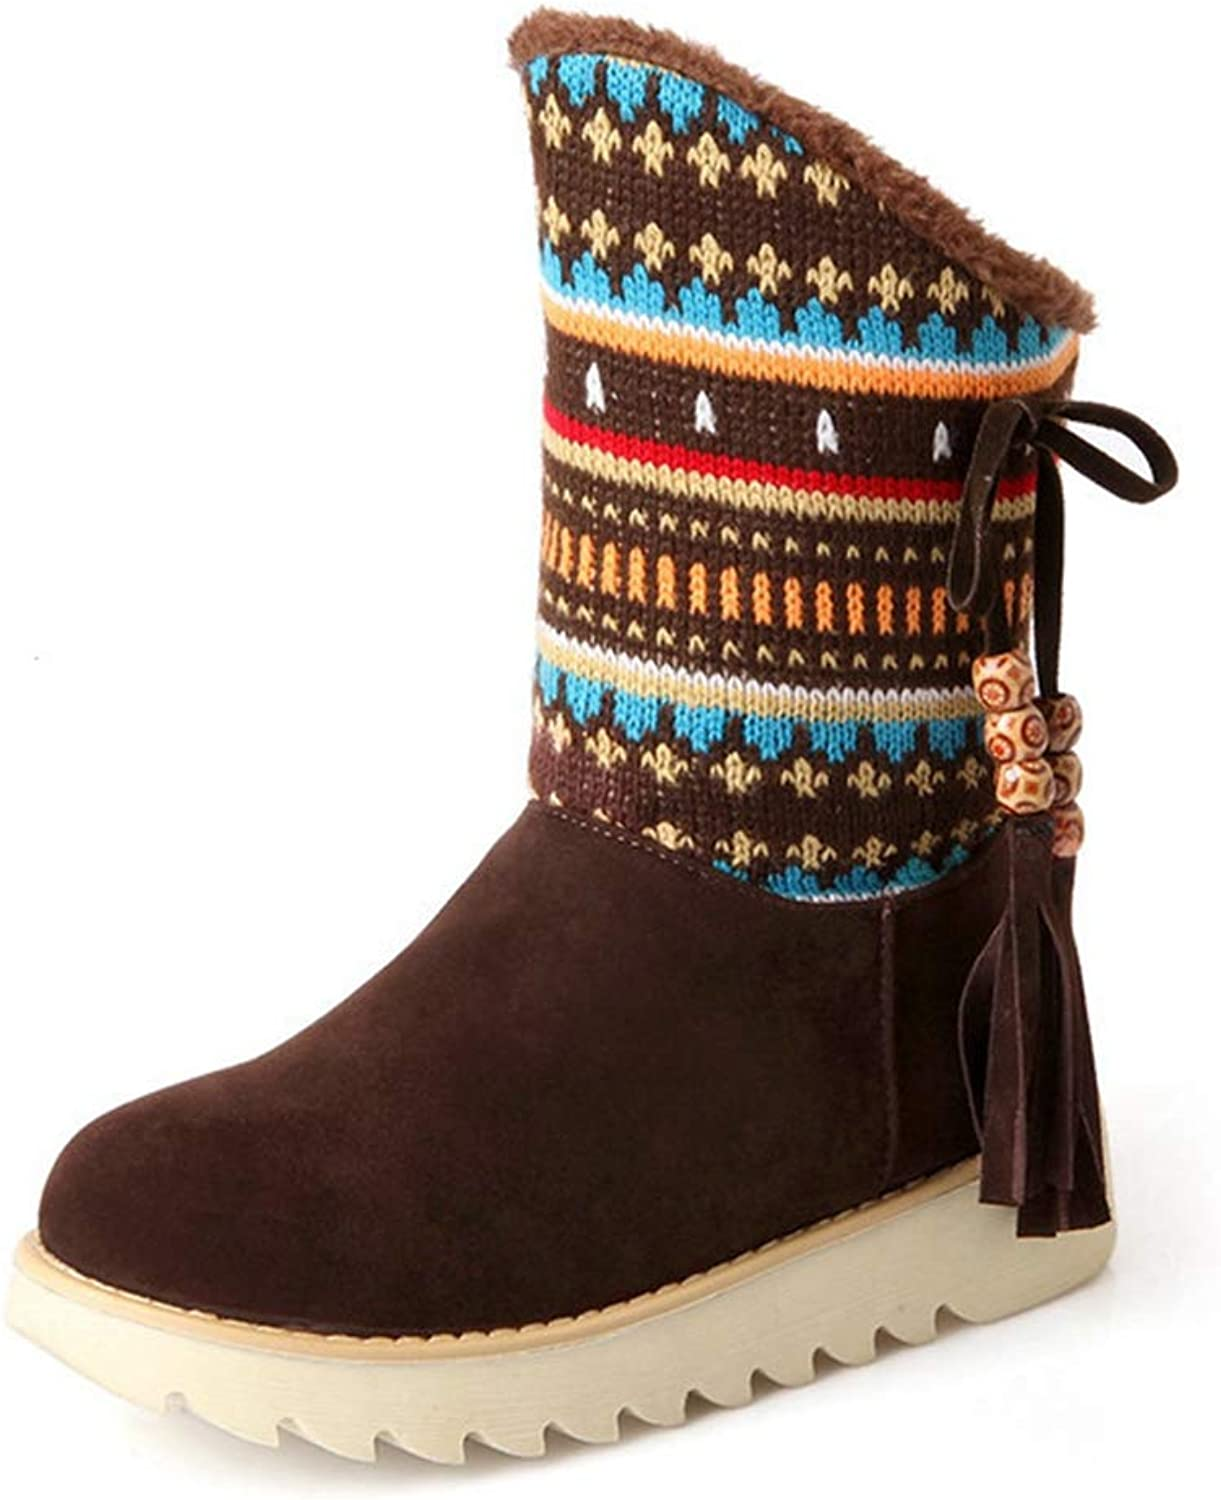 CYBLING Women's Winter Tassels Short Boots Suede Leather Faux Fur Linned Mid Calf Warm Snow Boots